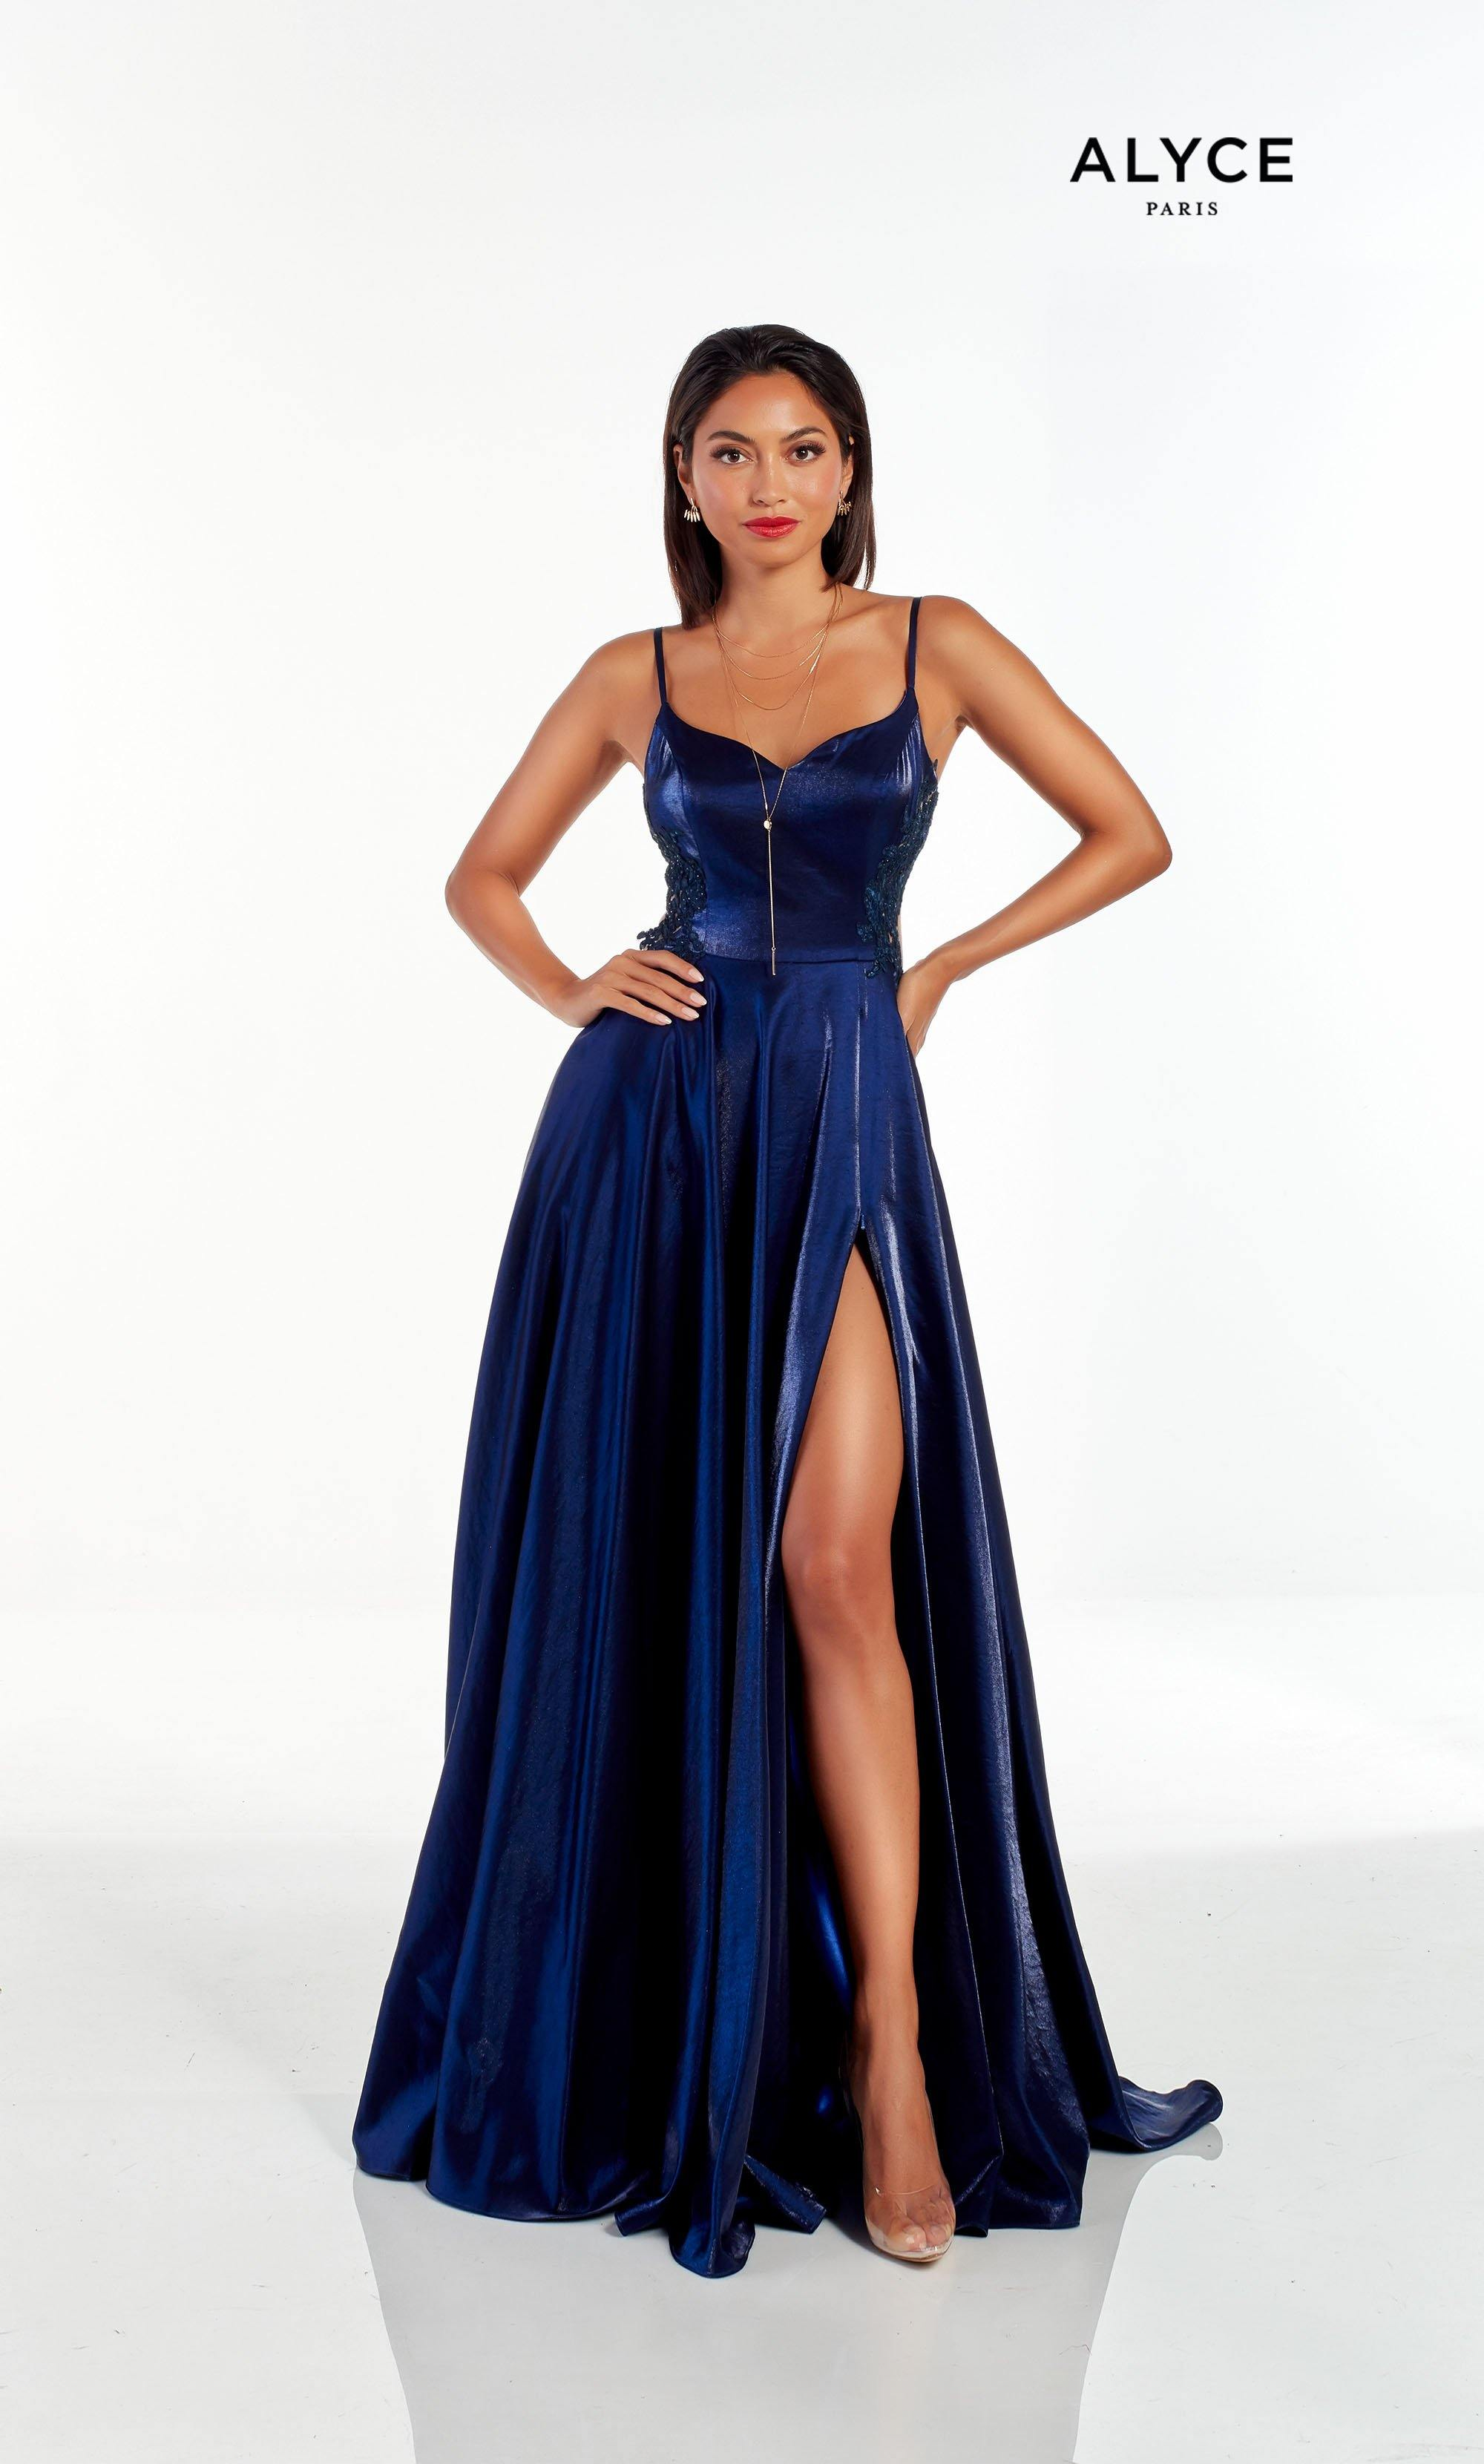 Midnight Blue prom dress with a sweetheart neckline and adjustable front slit